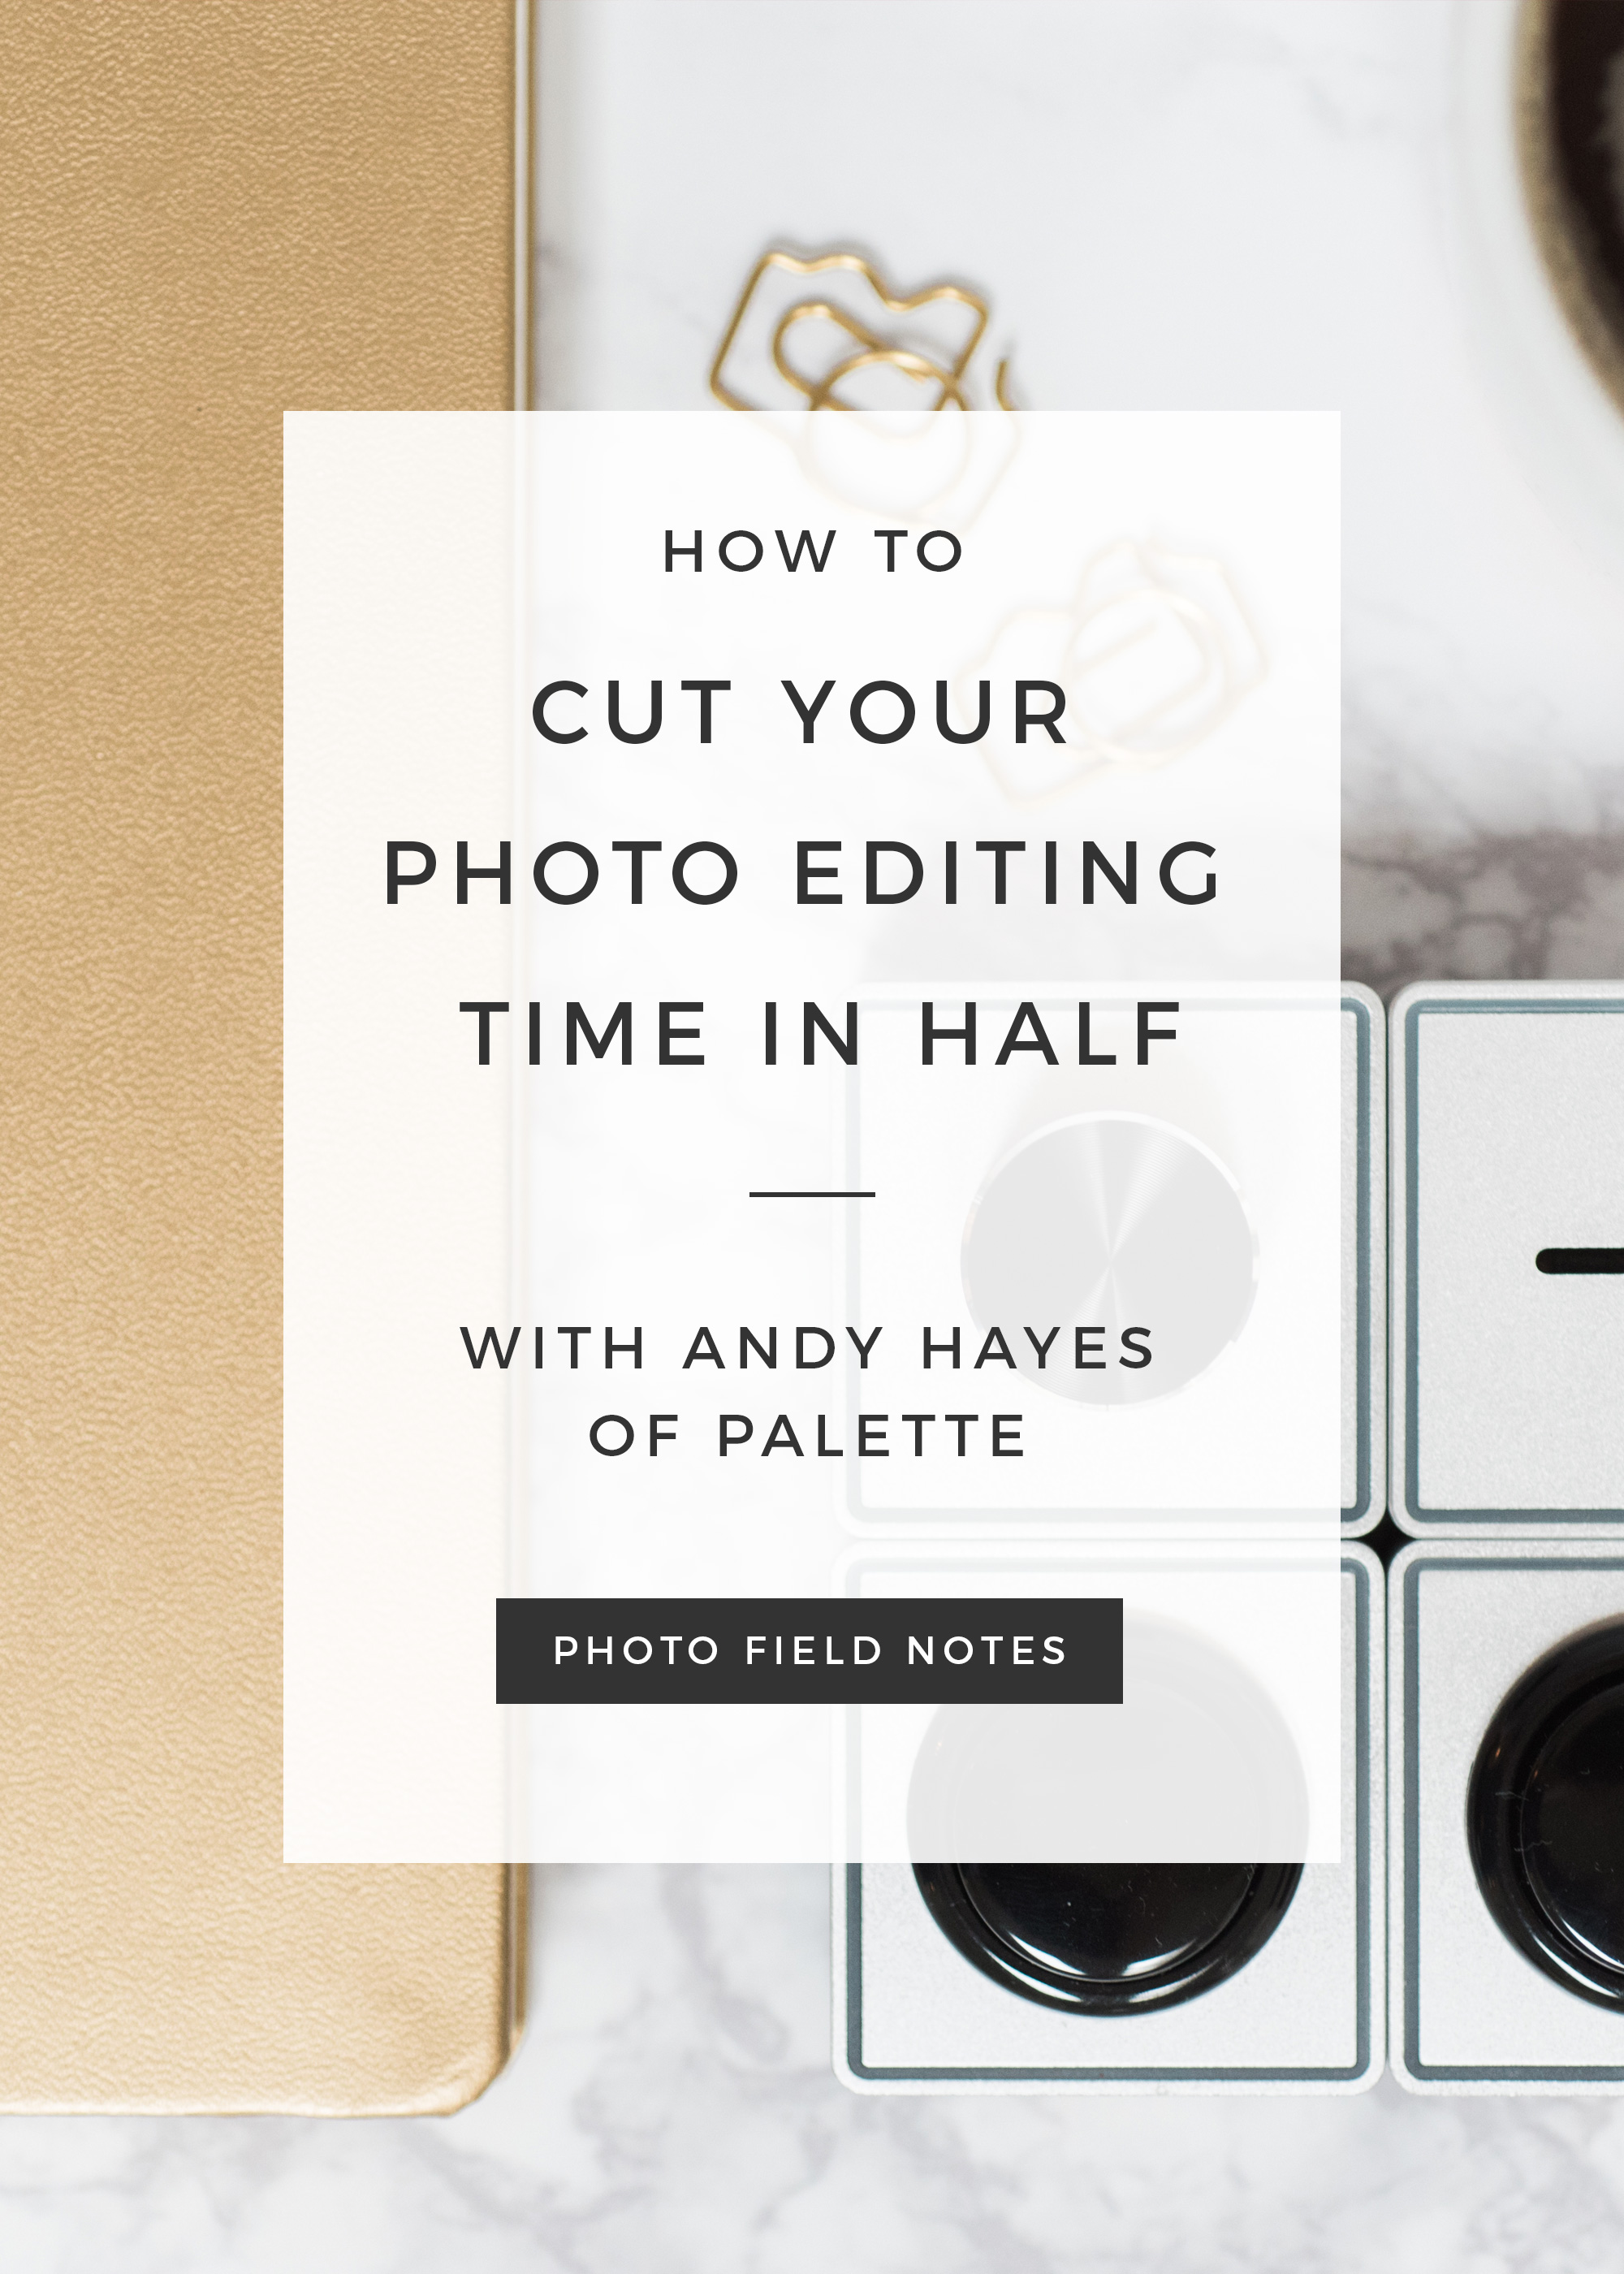 How to cut your photo editing time in half (speed up your photo editing)